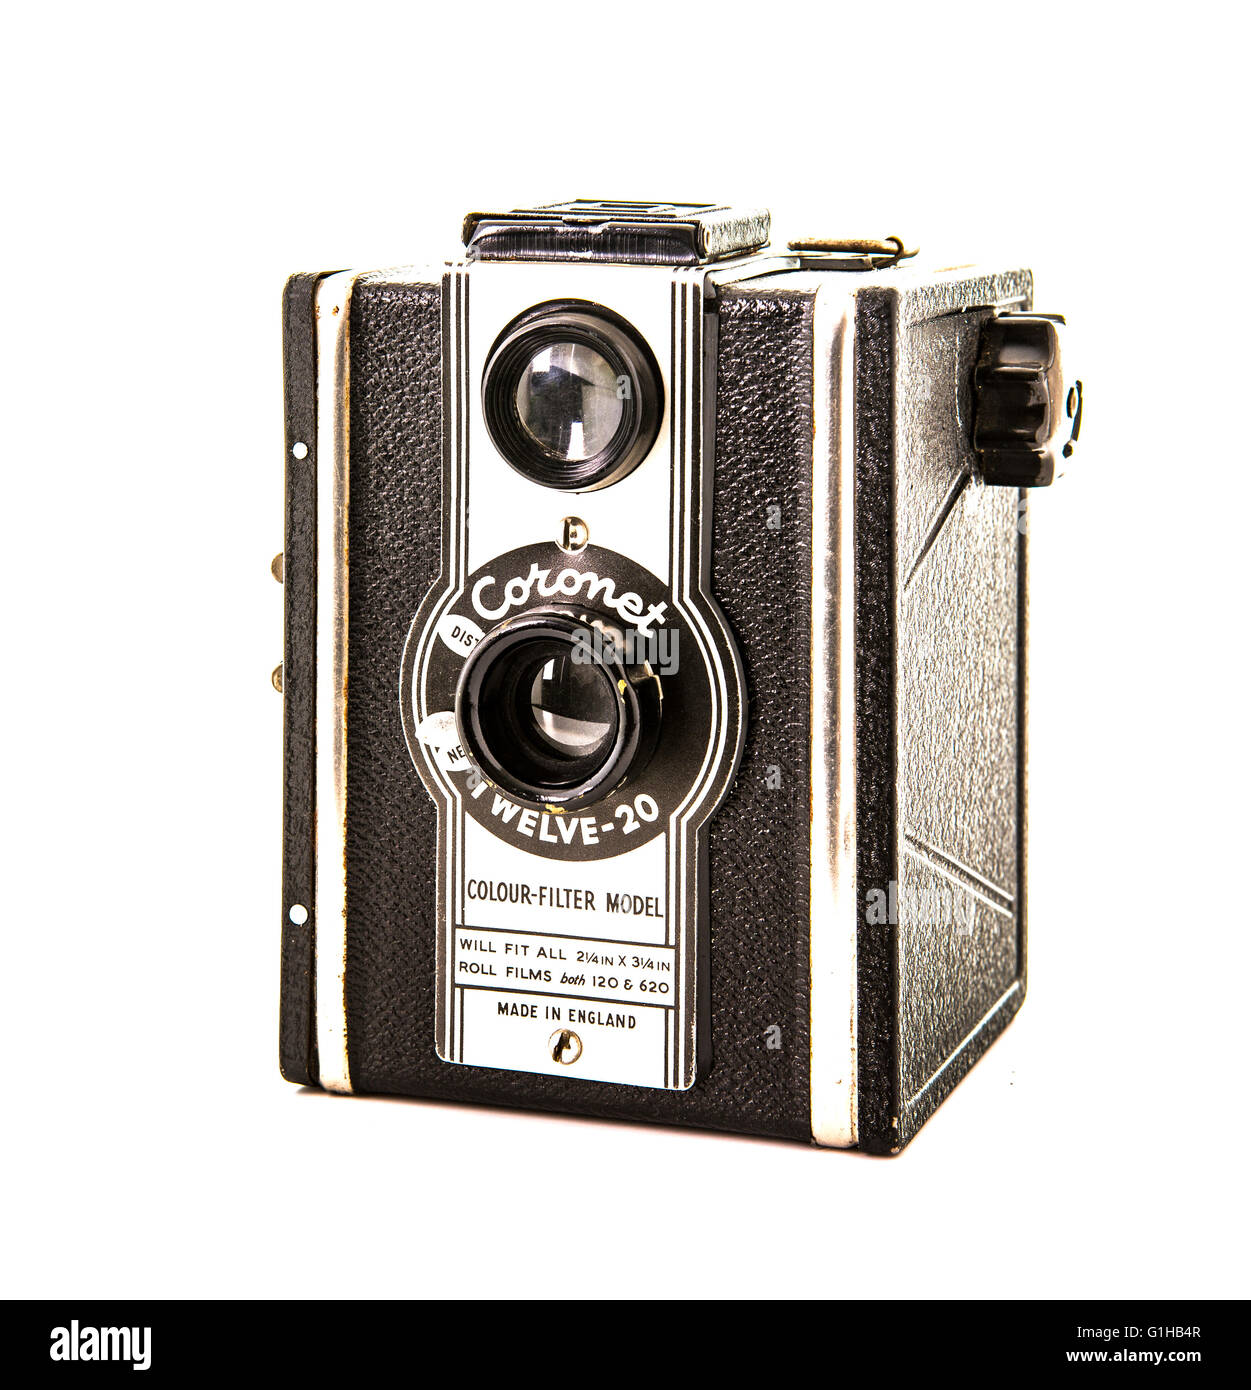 Coronet Twelve-20 box camera from the 1950's on a white background - Stock Image